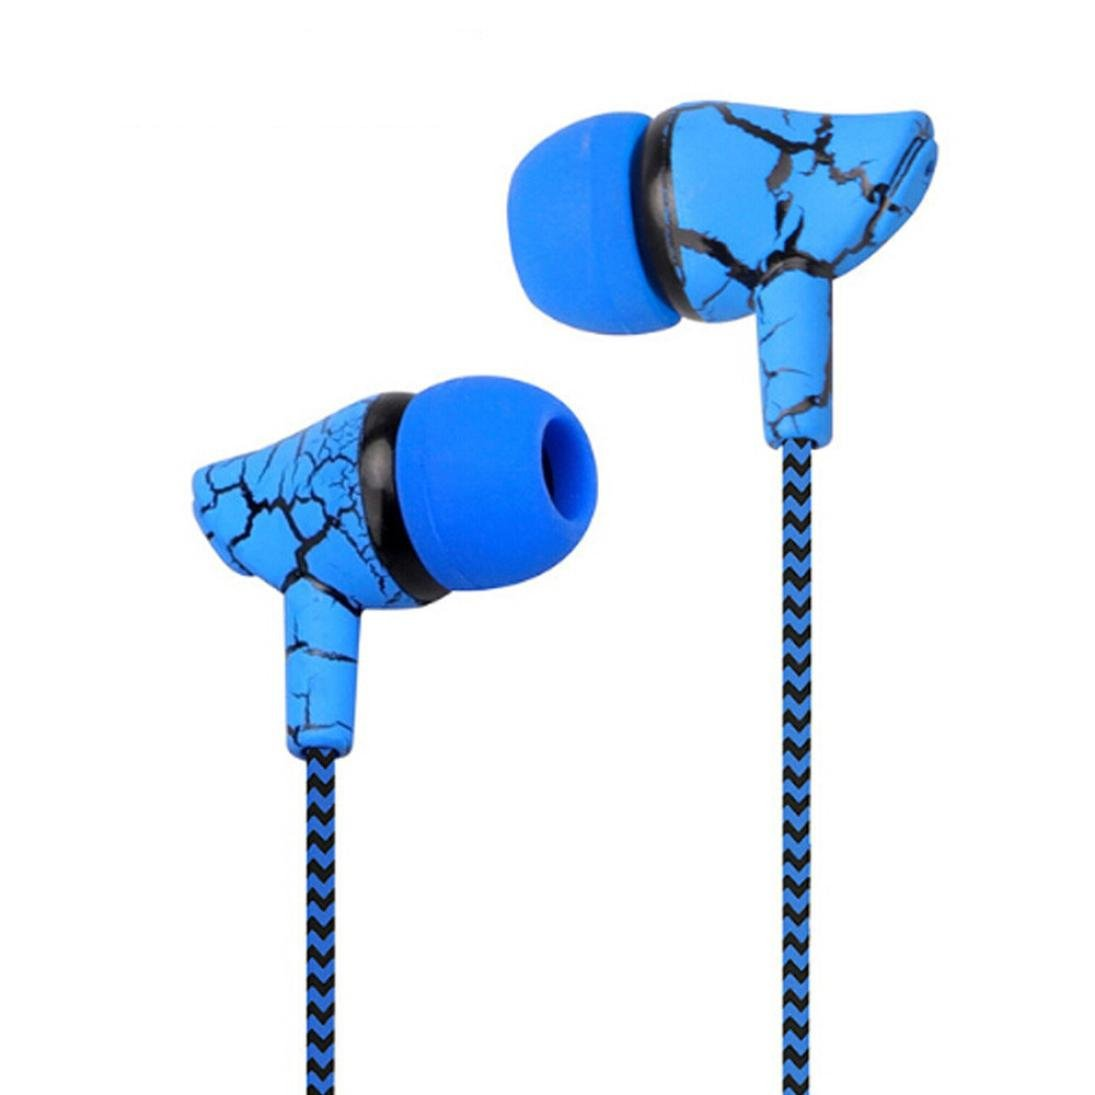 SUKEQ In Ear Earphones, 3.5mm Wired Stereo Crack Headphones Noise Isolating Sport Earbuds Headvy Duty Headset with Mic For MP3 MP4 (blue)